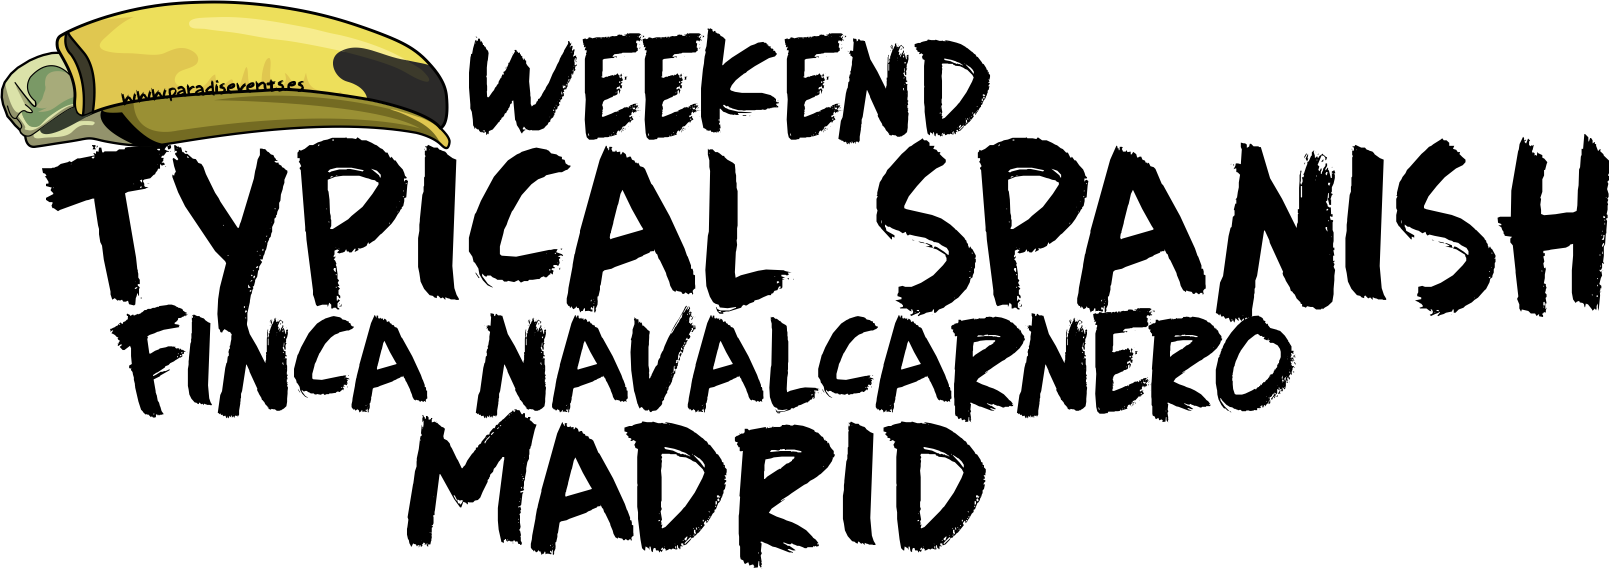 Sticker Pack FN Typical Spanish Weekend Despedida de Soltera y Soltero Madrid Finca Navalcarnero Madrid